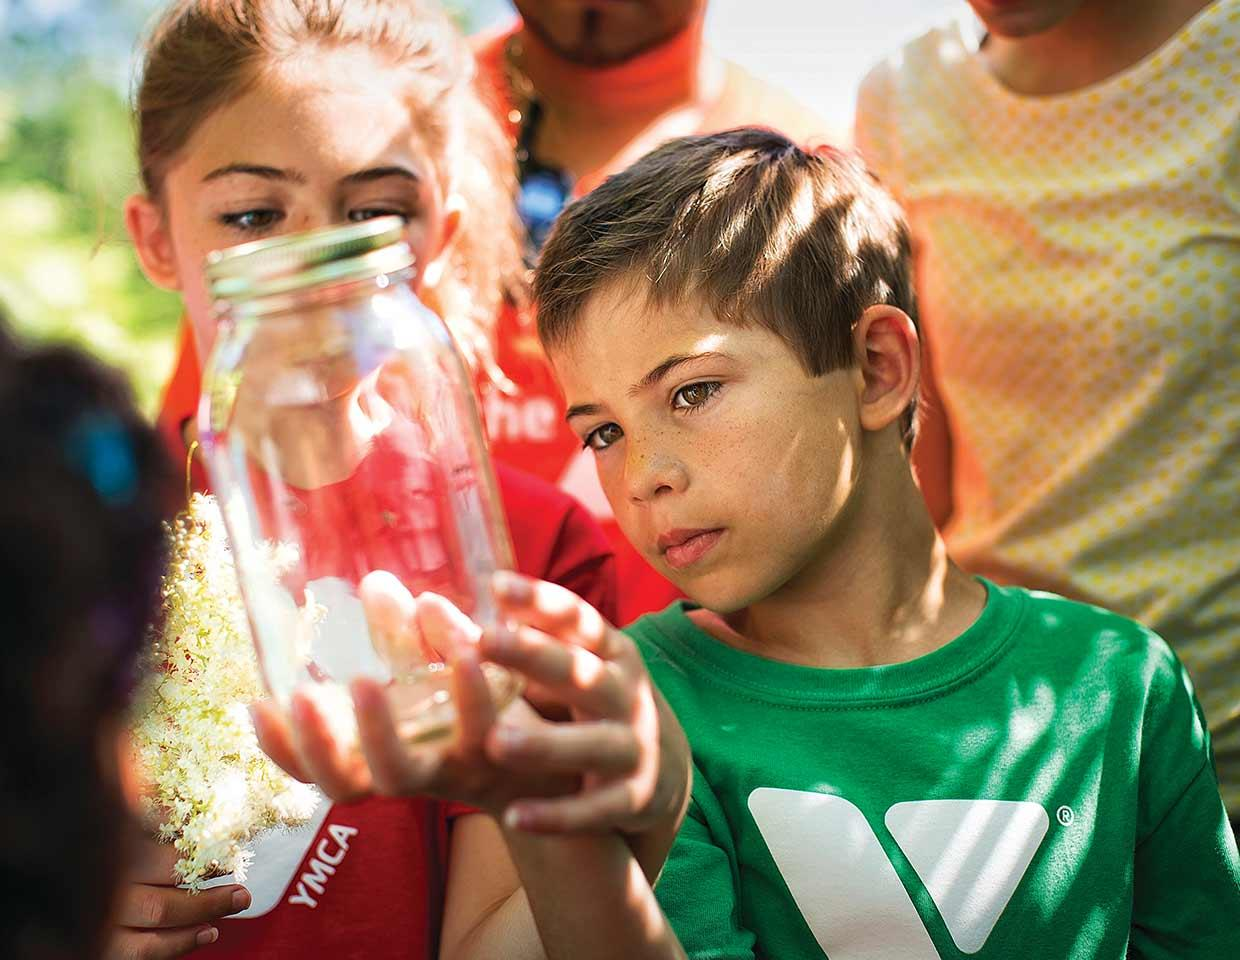 Children at camp examine a butterfly in a mason jar